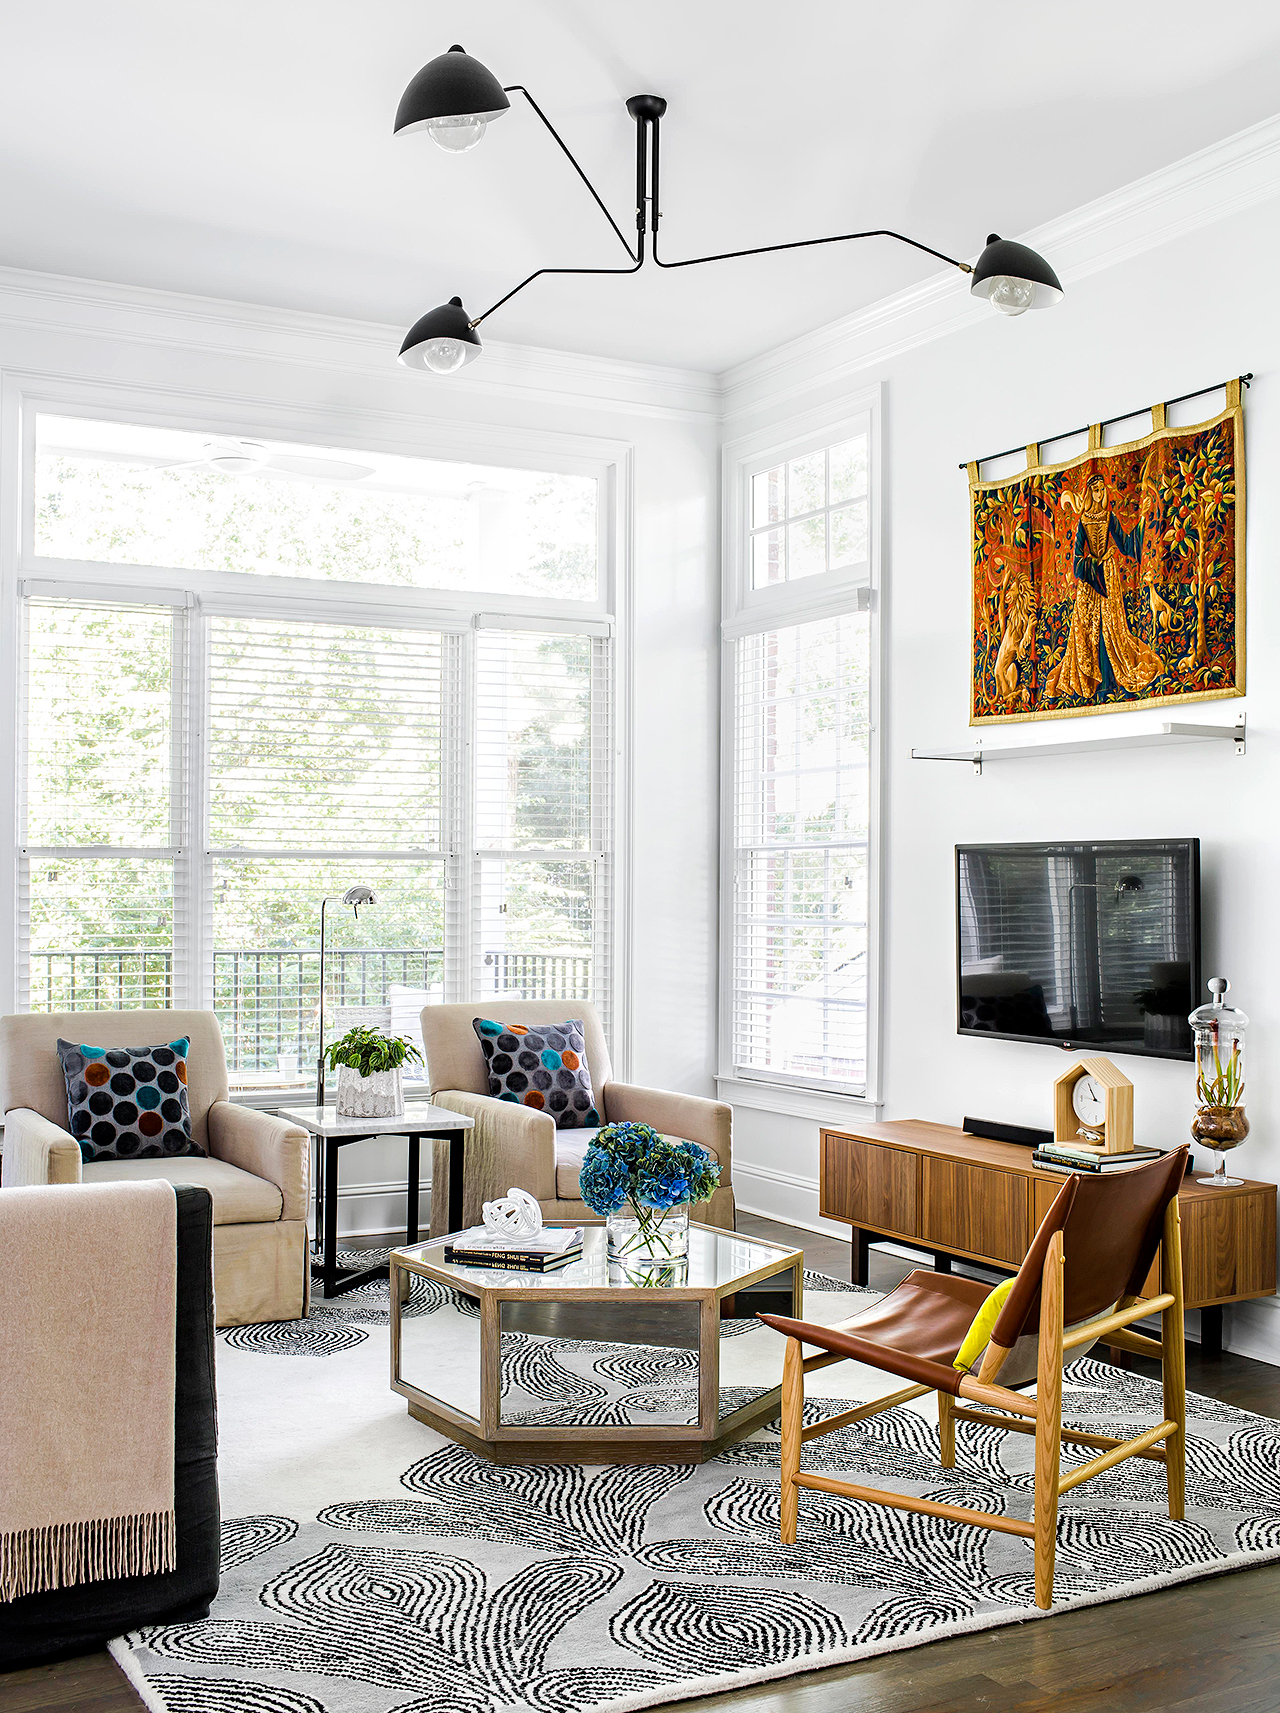 The Top 10 Home Tours You Loved Most in 2019